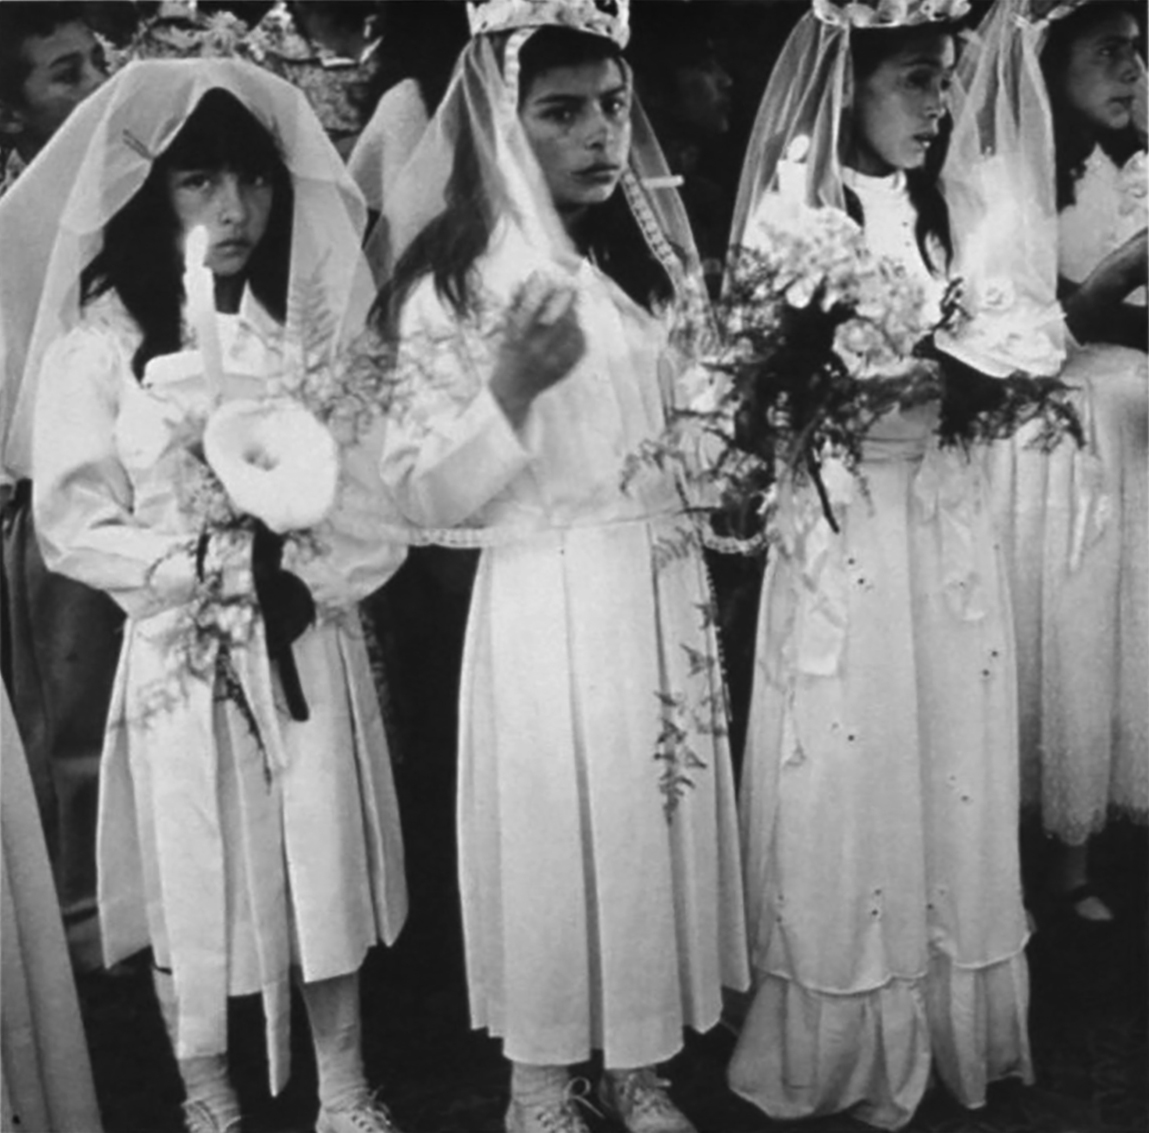 ©Wendy Ewald Courtesy Steven Kasher Gallery, New York,First Communion, Colombia, 1982-1985